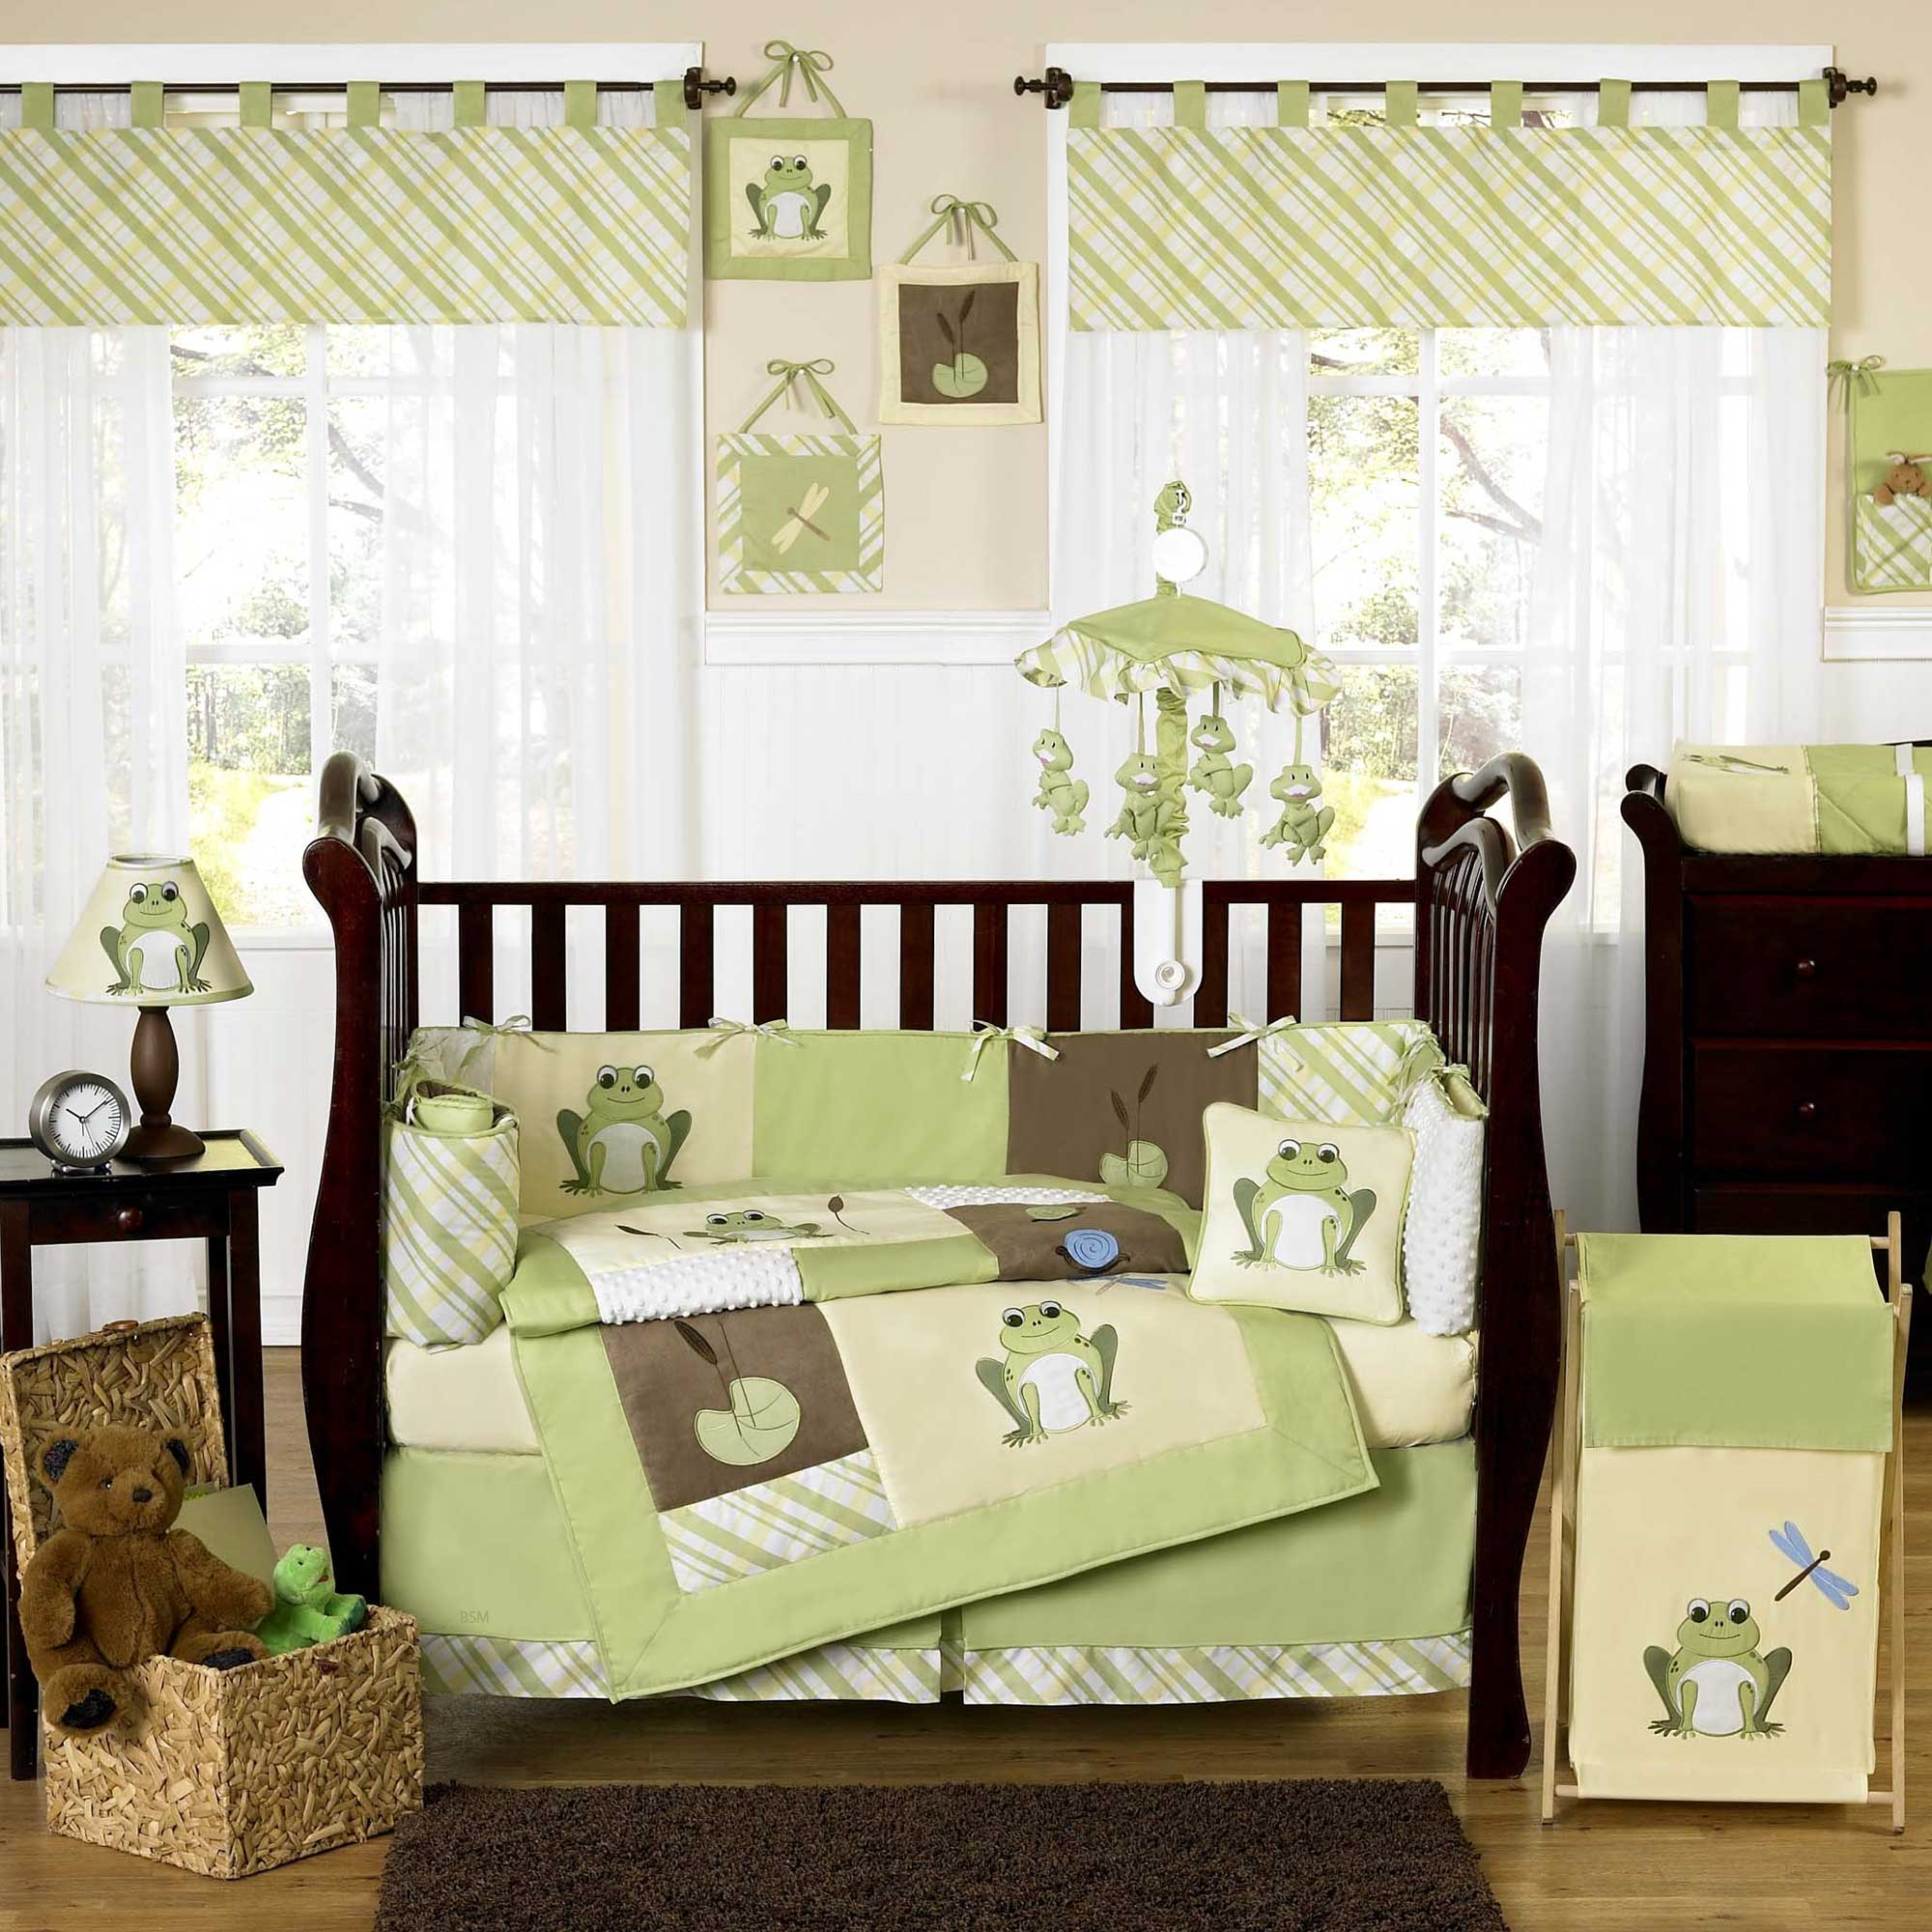 Baby Room Ideas Nursery Themes And Decor: Themes For Baby Rooms Ideas